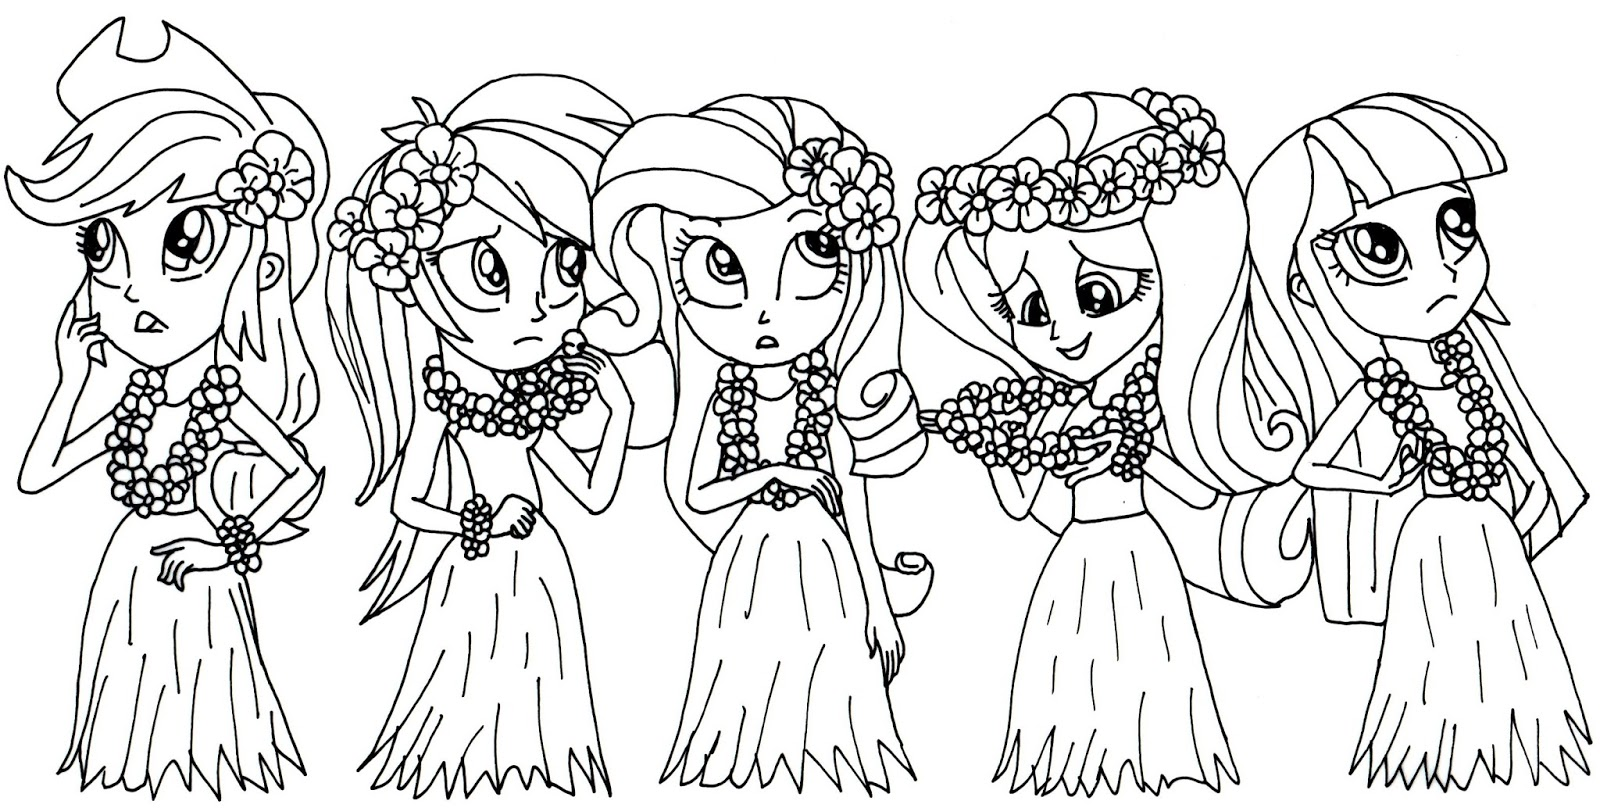 Free Printable My Little Pony Coloring Pages My Little My Pony Equestria Coloring Pages To Print Free